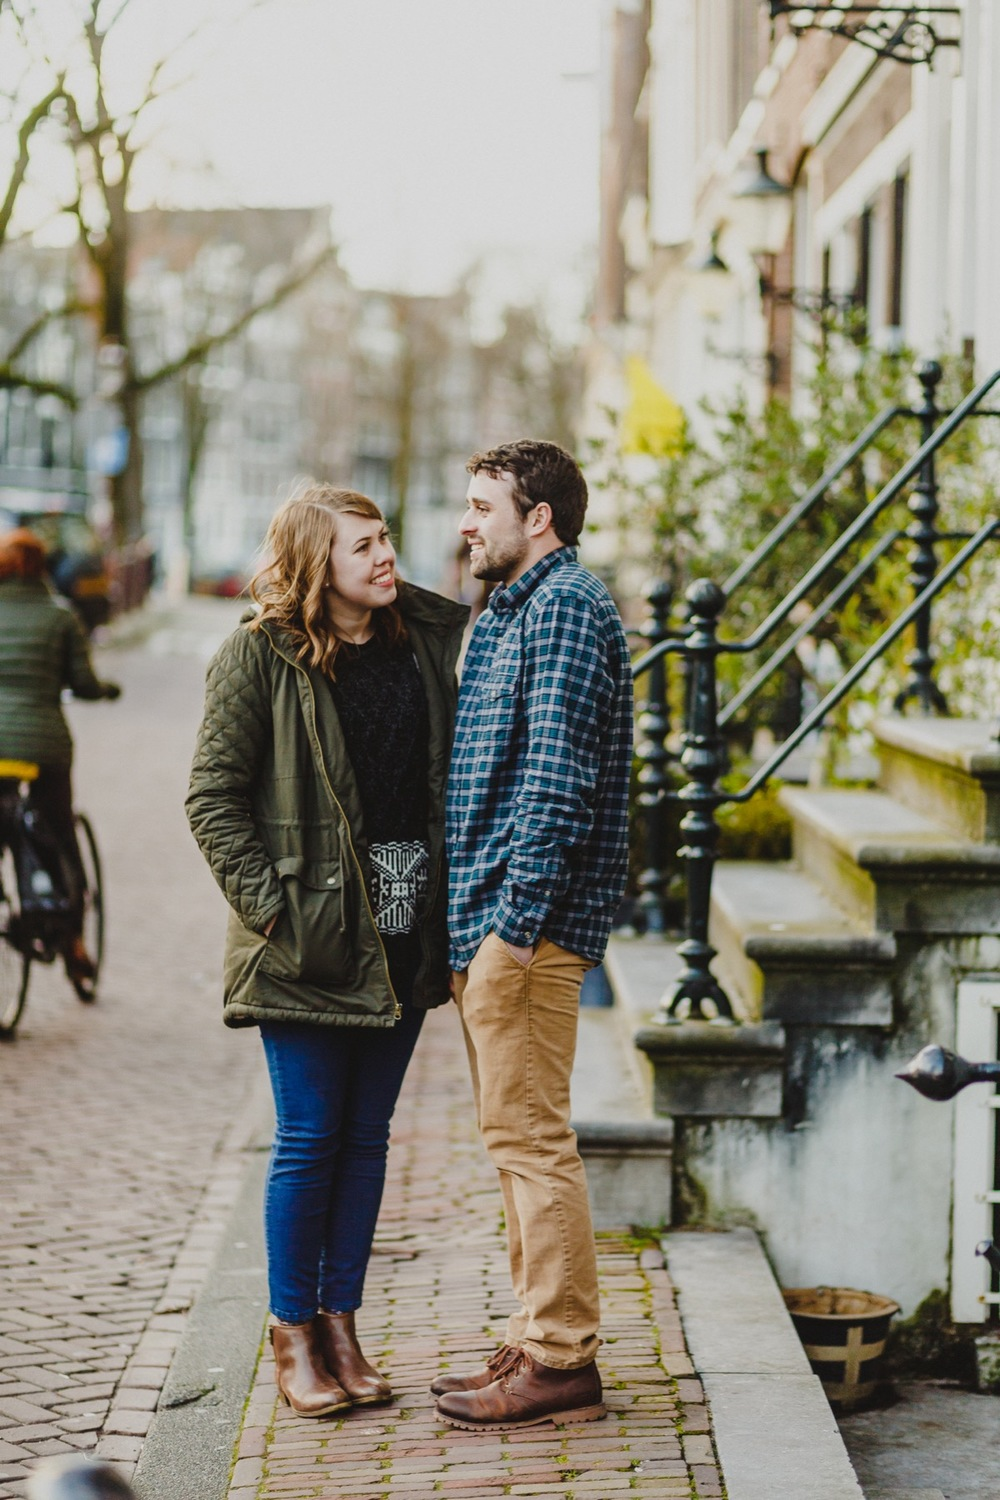 HIgh School Sweetheart Honeymoon in Amsterdam | Amsterdam Vacation Photographer